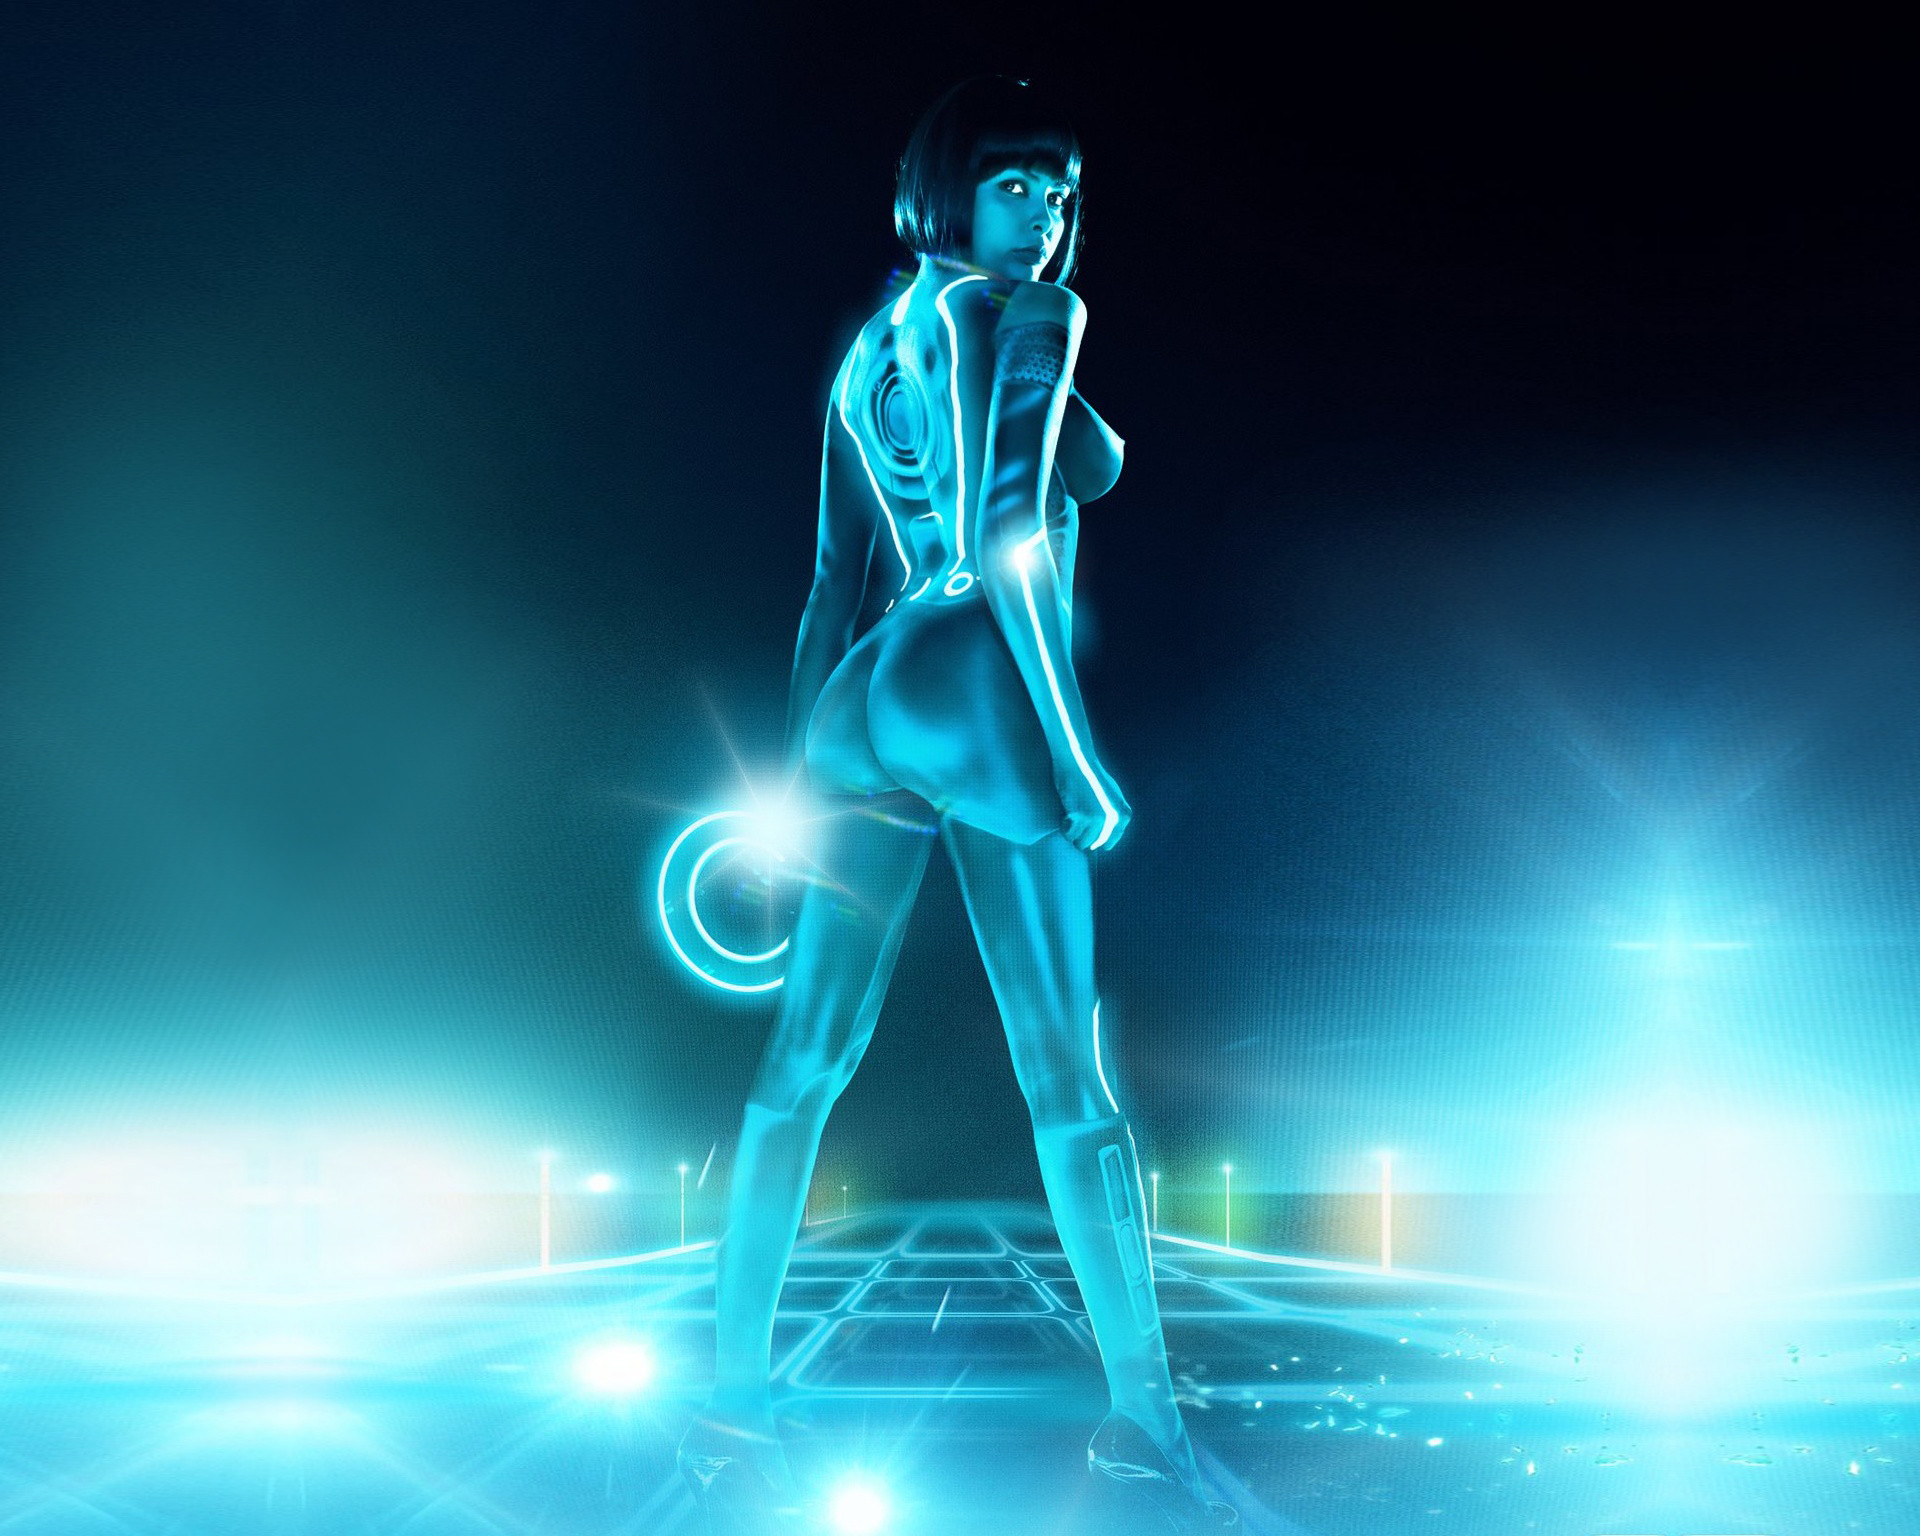 Tron wallpapers 79 background pictures - Legacy wallpaper ...